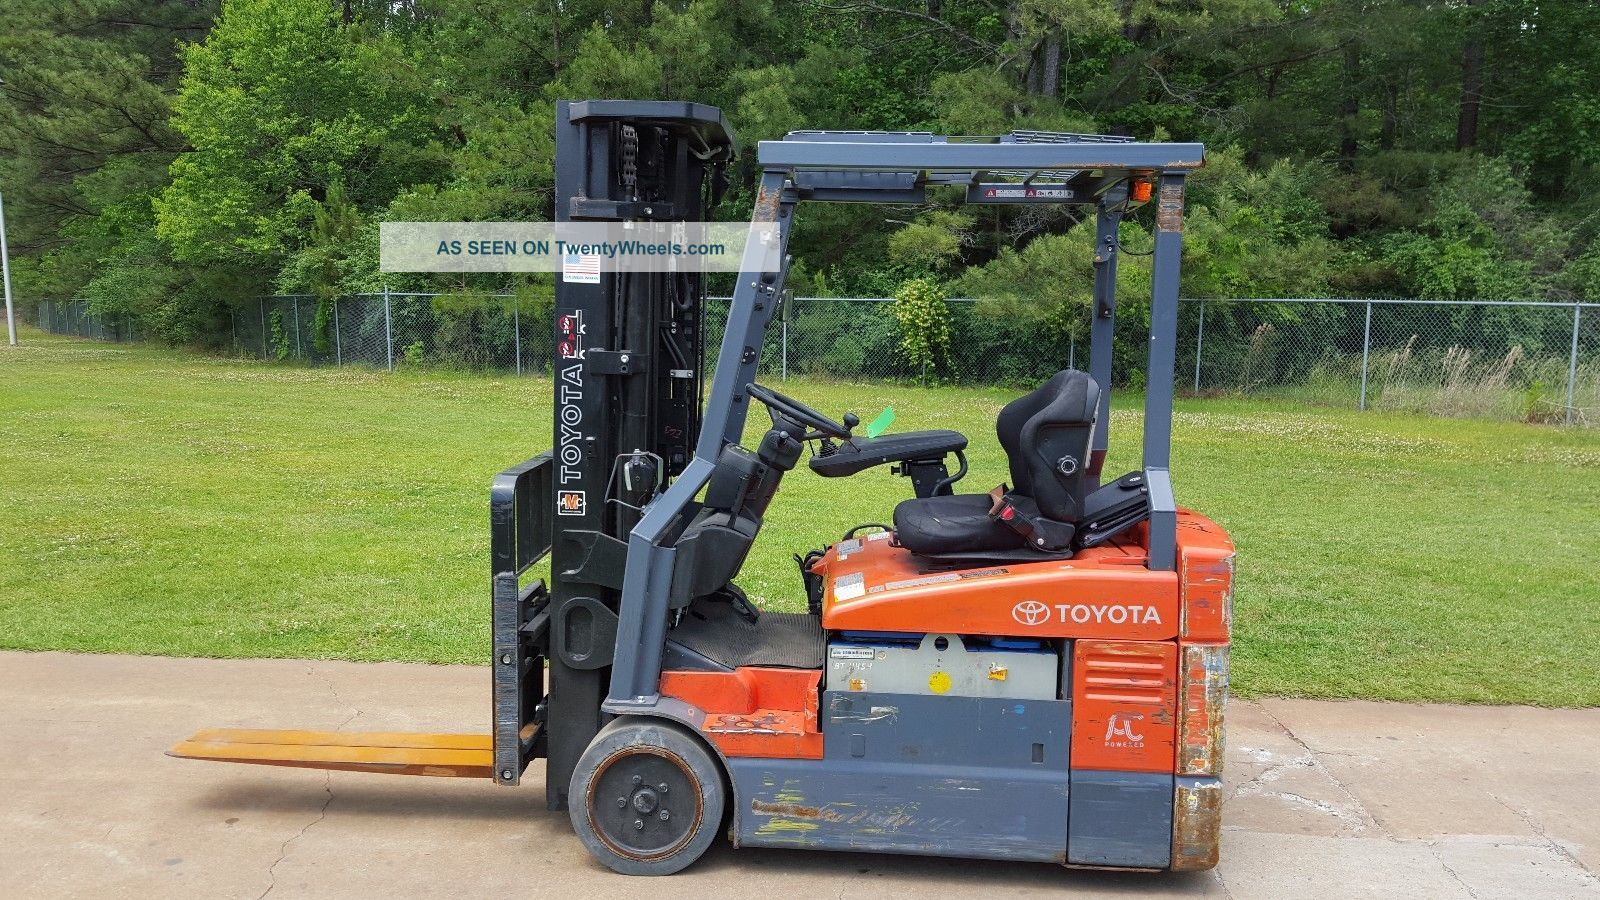 Toyota Electric Forklift Lever Layout : Toyota electric forklift lever layout pictures to pin on